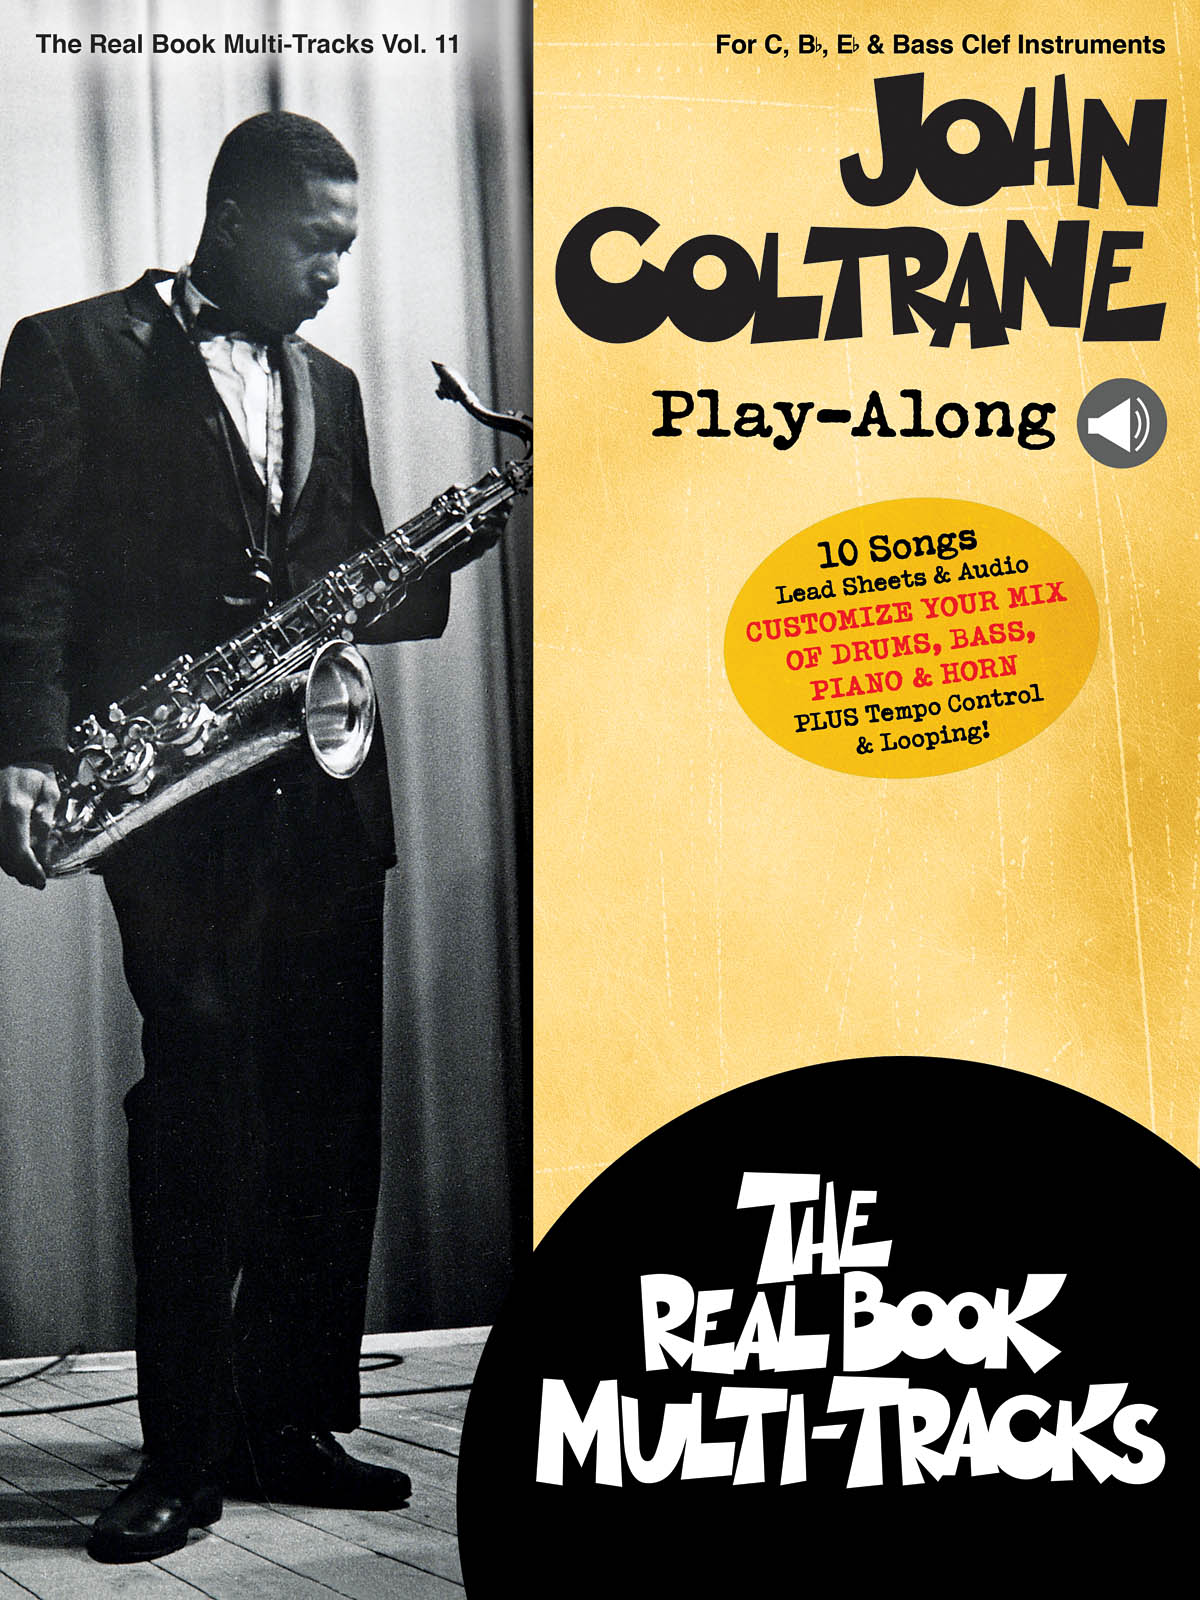 John Coltrane Play-Along: Real Book Multi-Tracks Volume 11